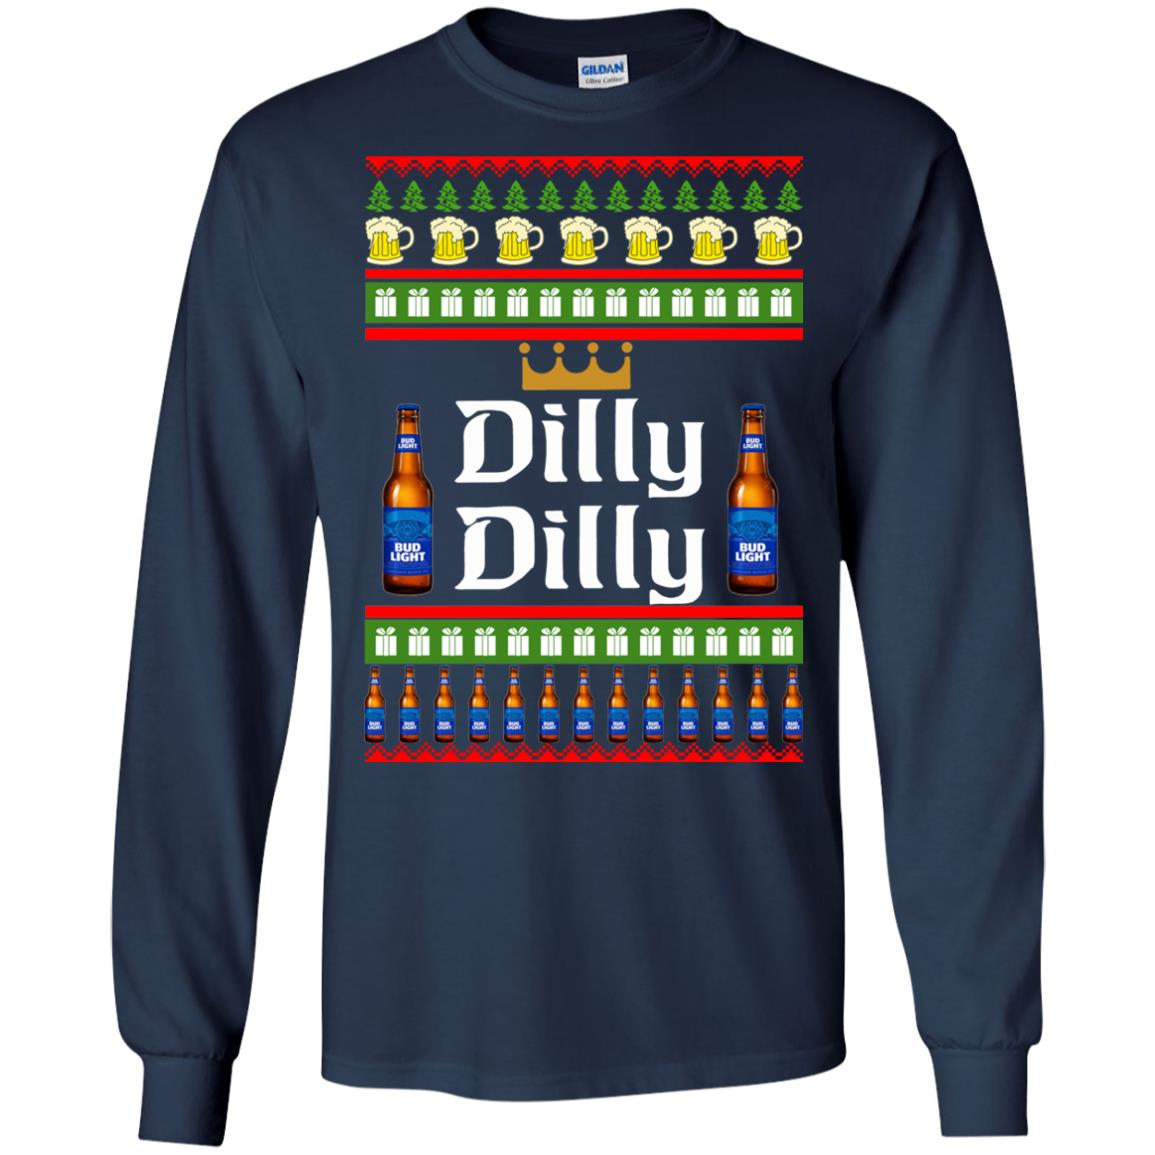 image 4232 - Bud Light: Dilly Dilly Ugly Sweater, Christmas Sweatshirts